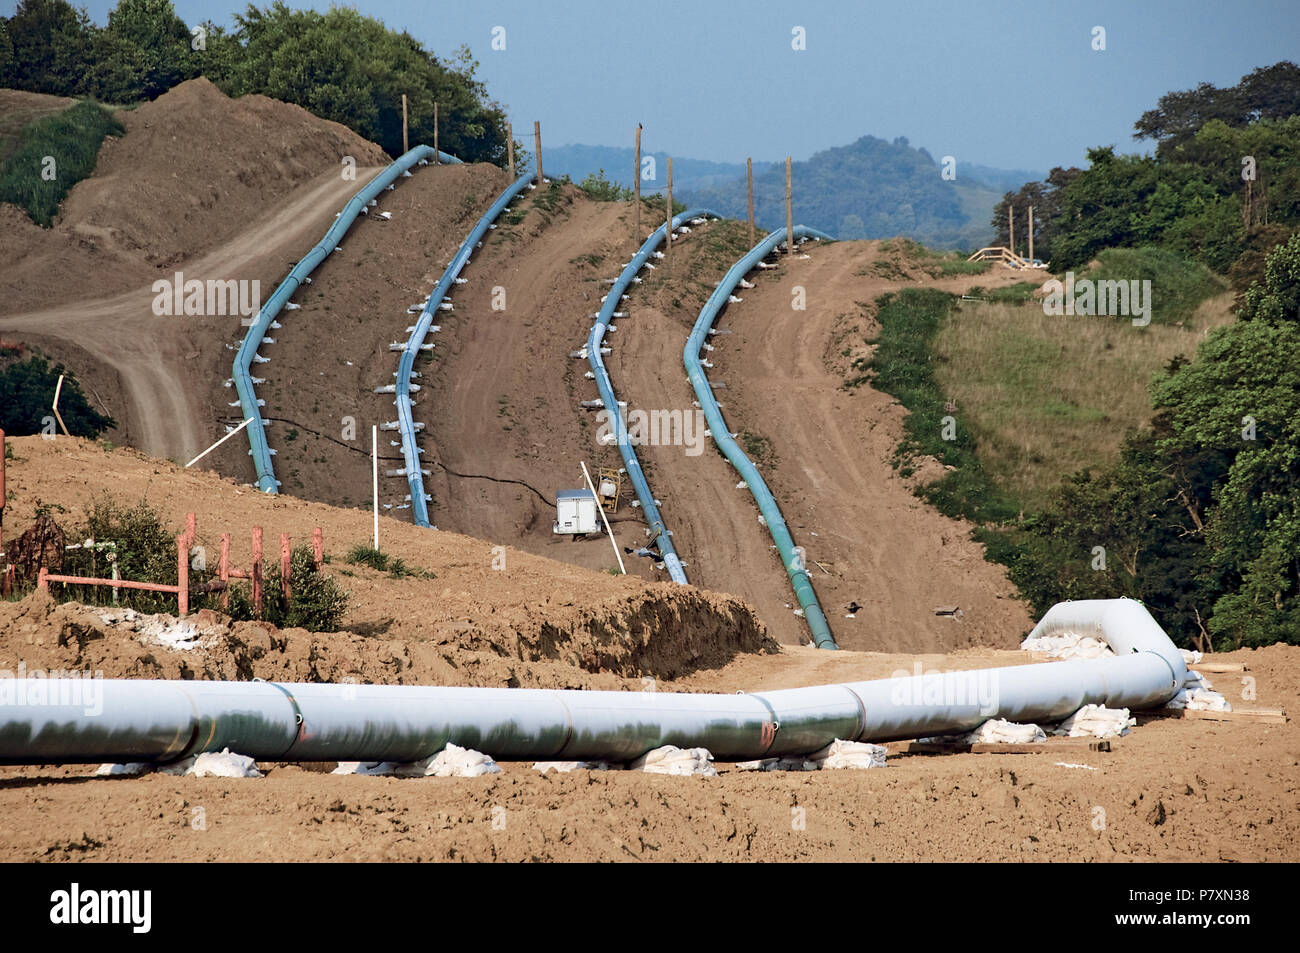 Laying a Pipeline - Stock Image